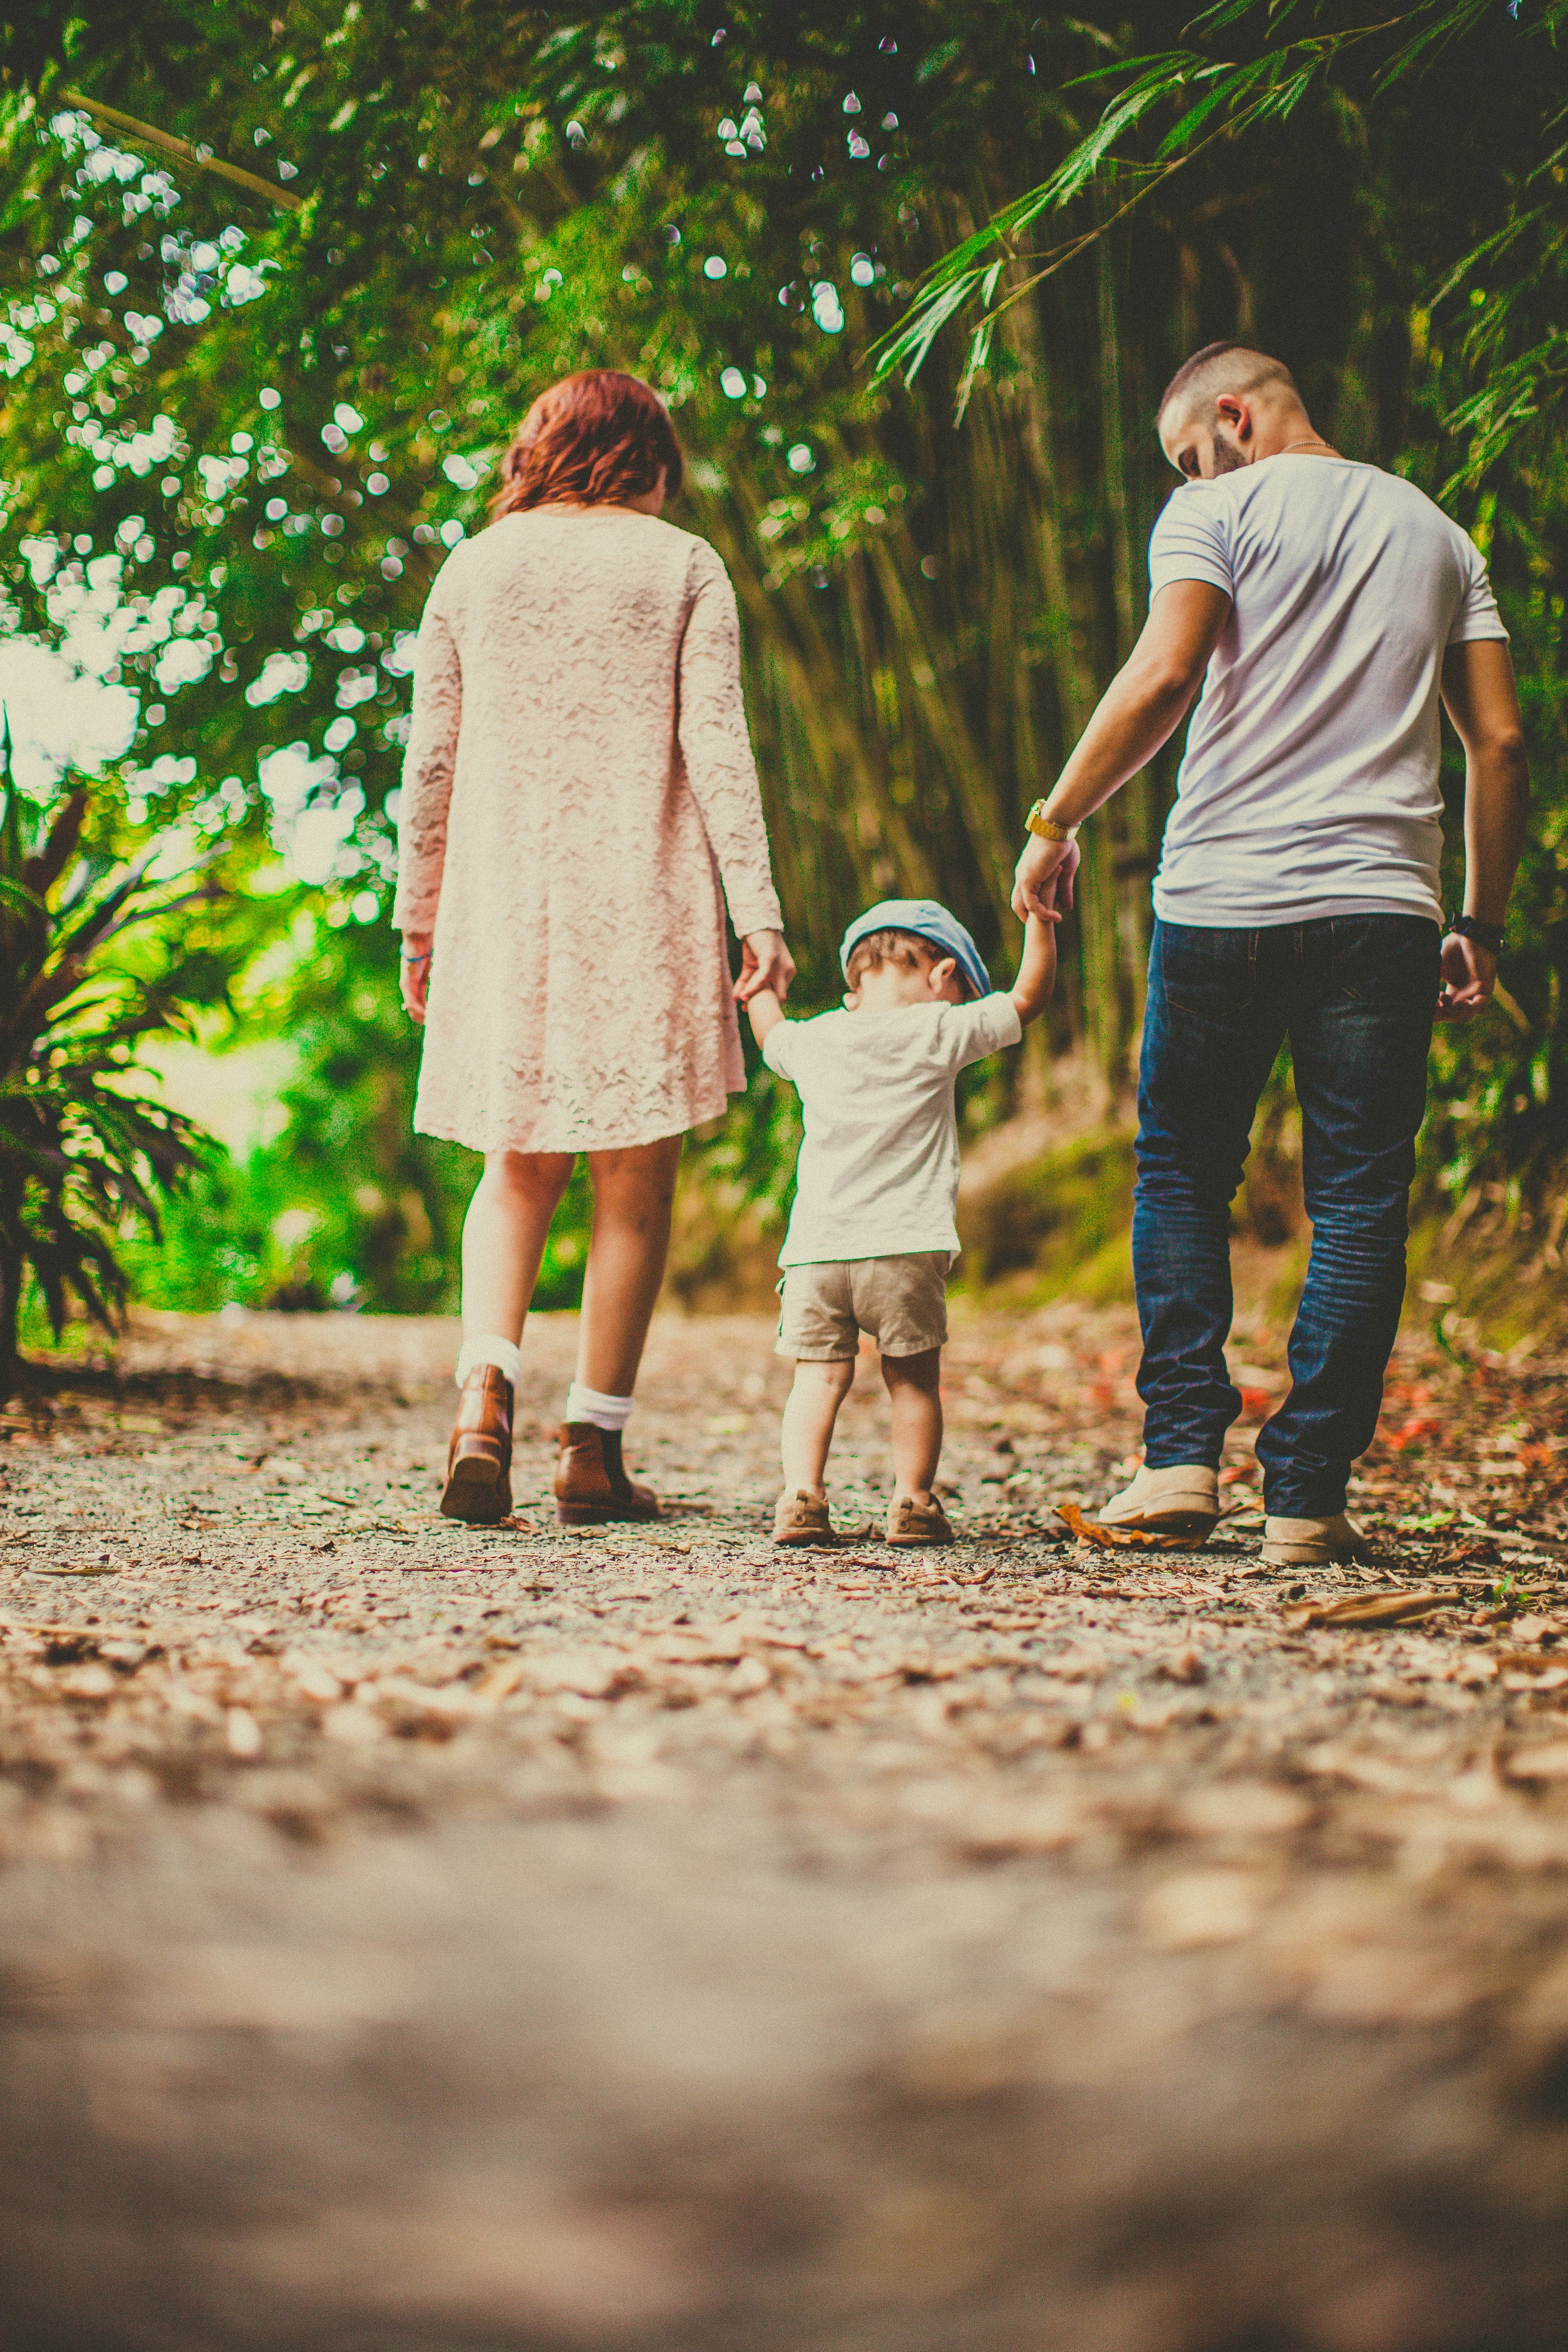 Finally, I have a family I always dreamed of | Photo: Pexels